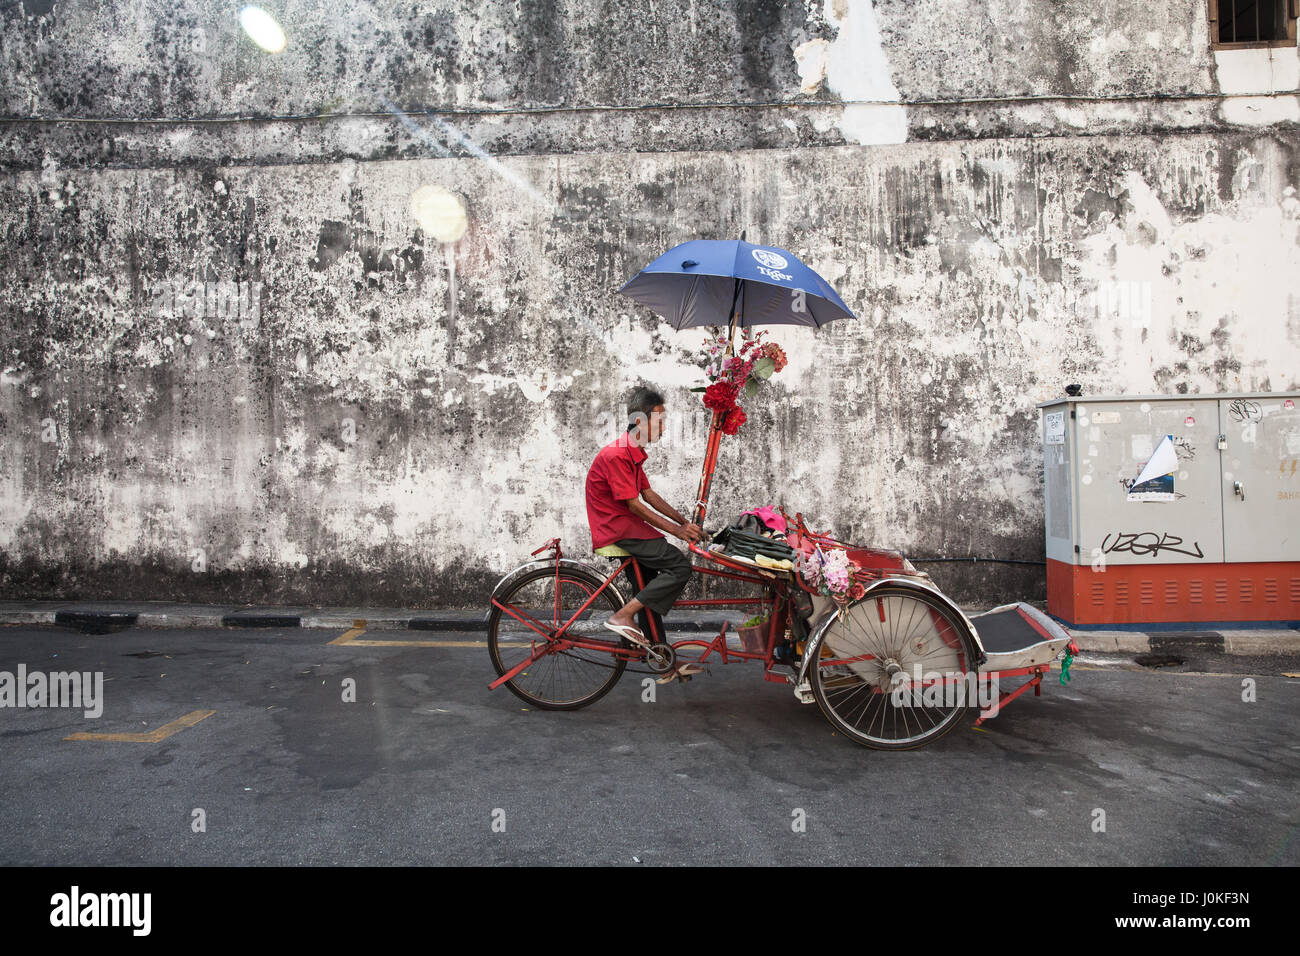 George Town,  Malaysia - March 21, 2016: Cycle rickshaw is riding down the street on March 21, 2016 in George Town, Stock Photo